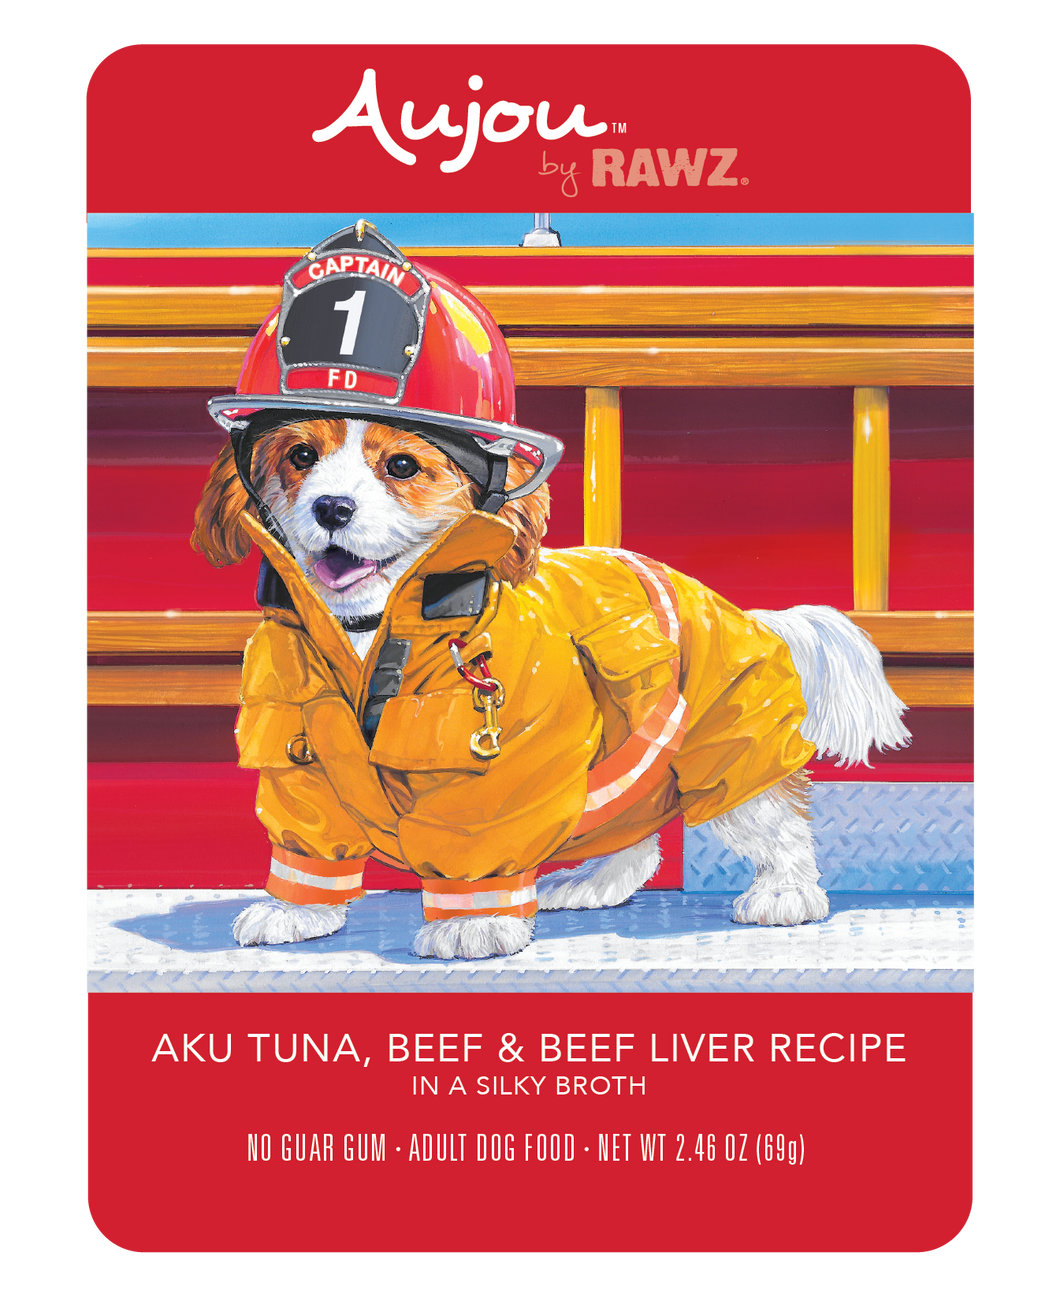 Aujou Aku Tuna, Beef & Beef Liver Dog Food Pouch Box Of 8/2.5 Oz Each